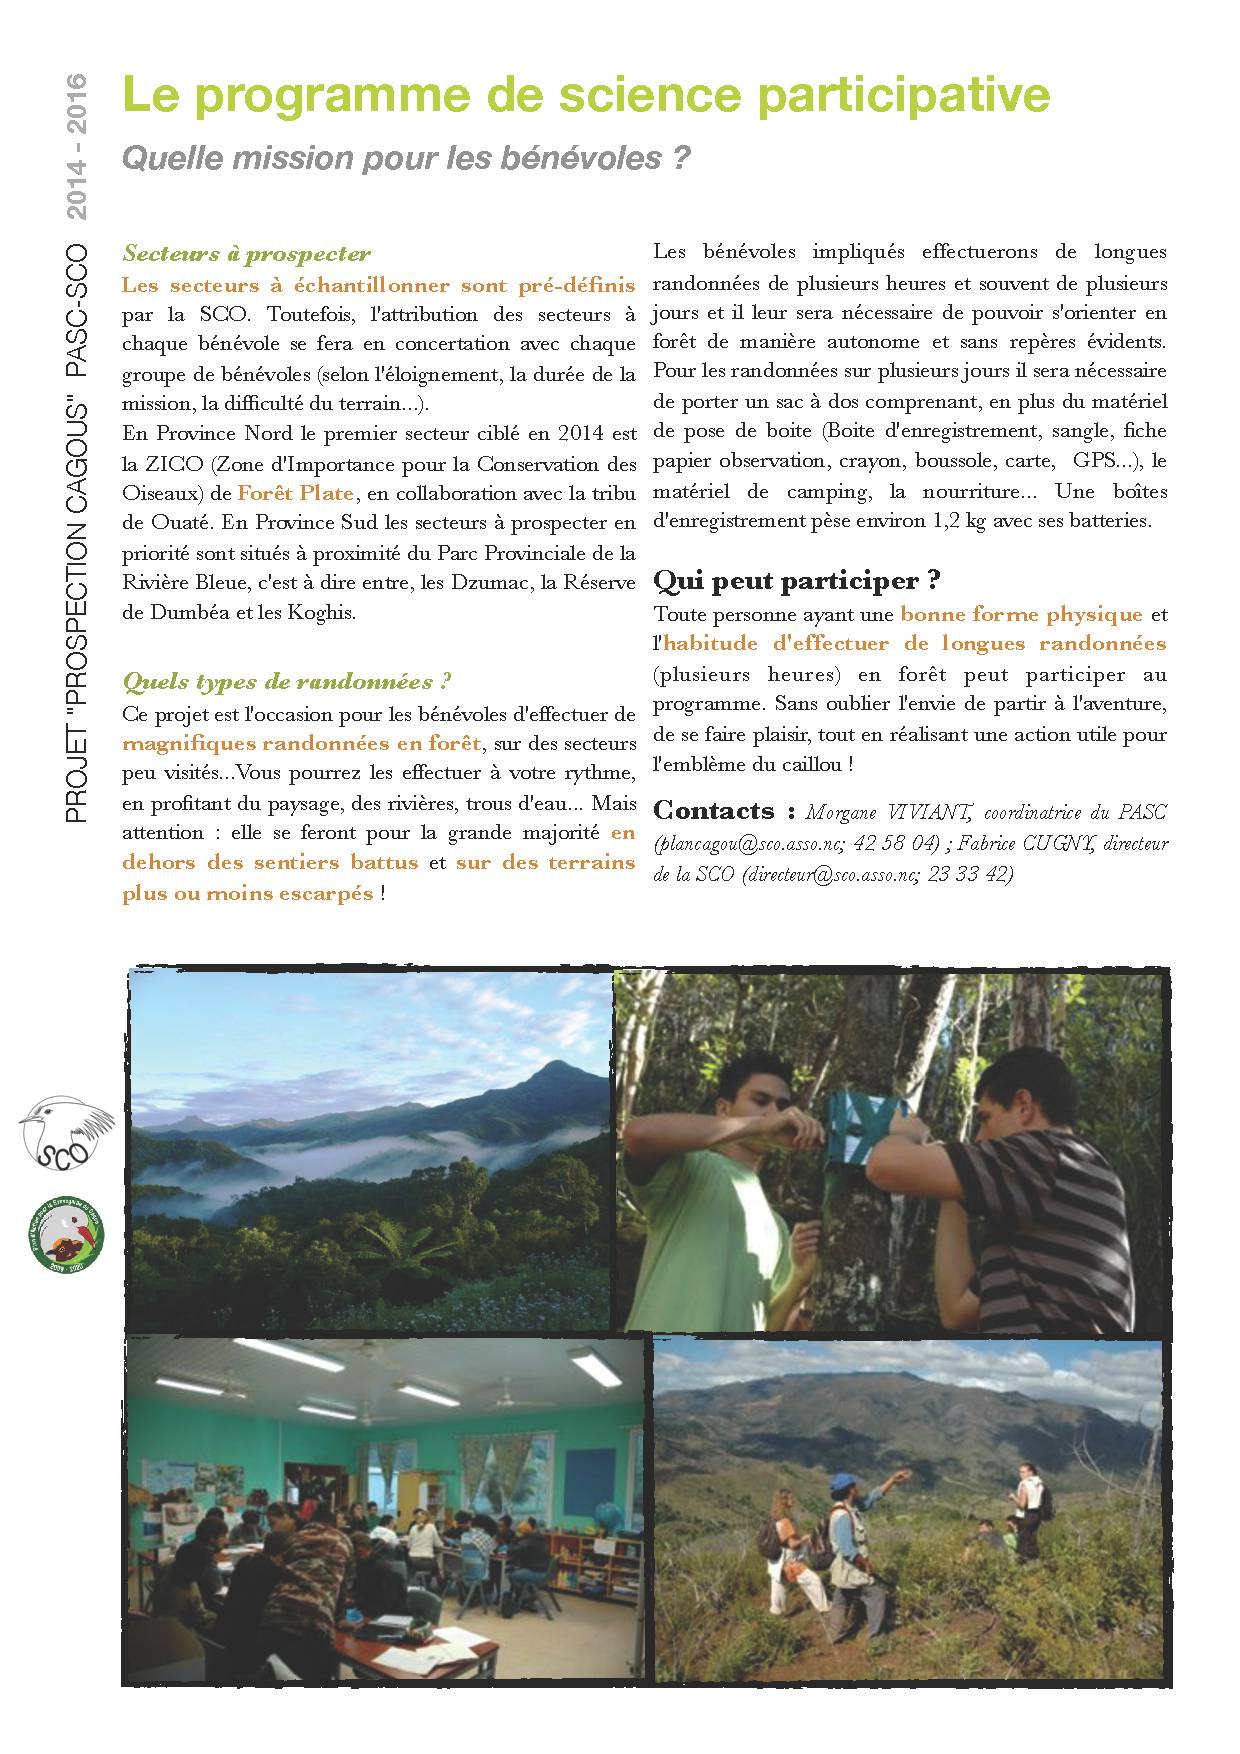 P4 Projet PROSPECTION CAGOU 2014 - Programme de science participative R